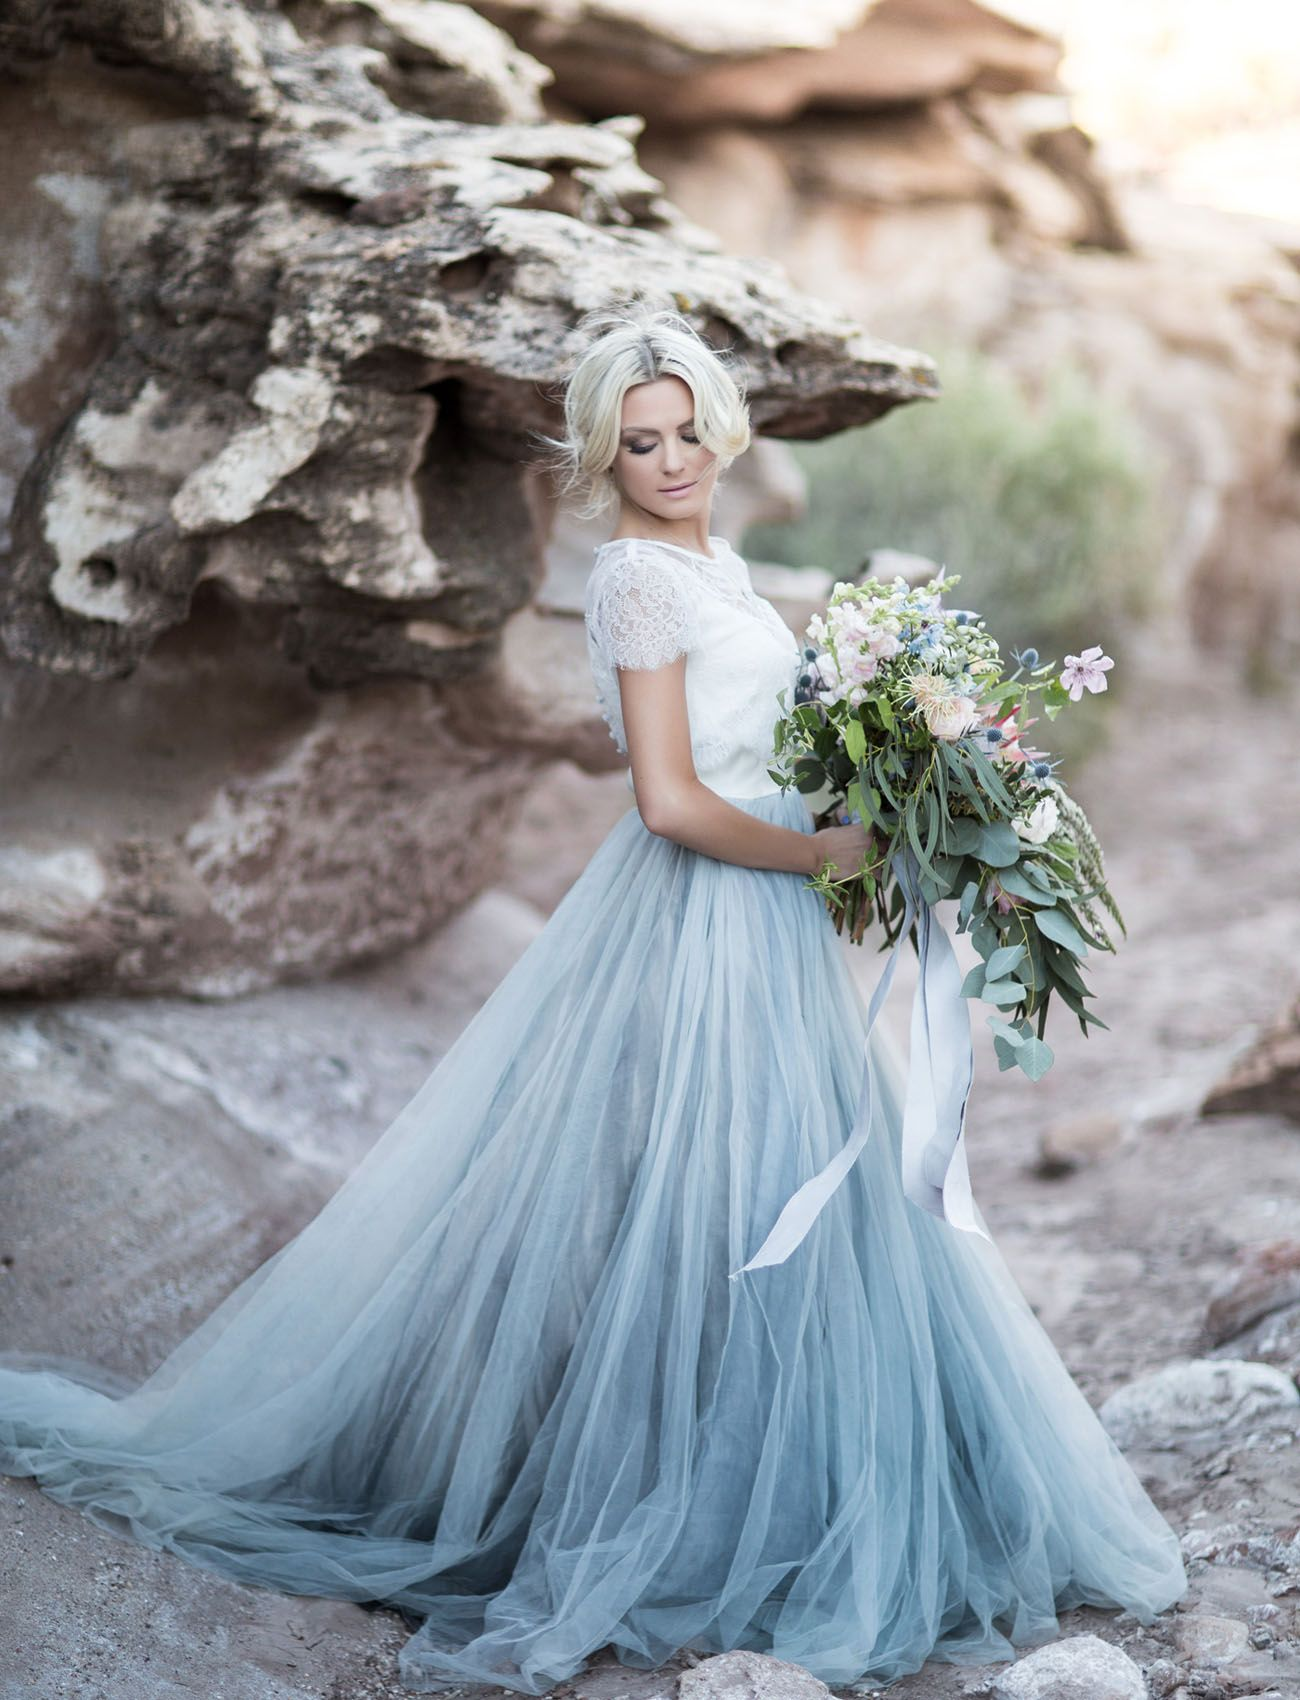 Desert Wedding Inspiration at Zion National Park | about wedding ...